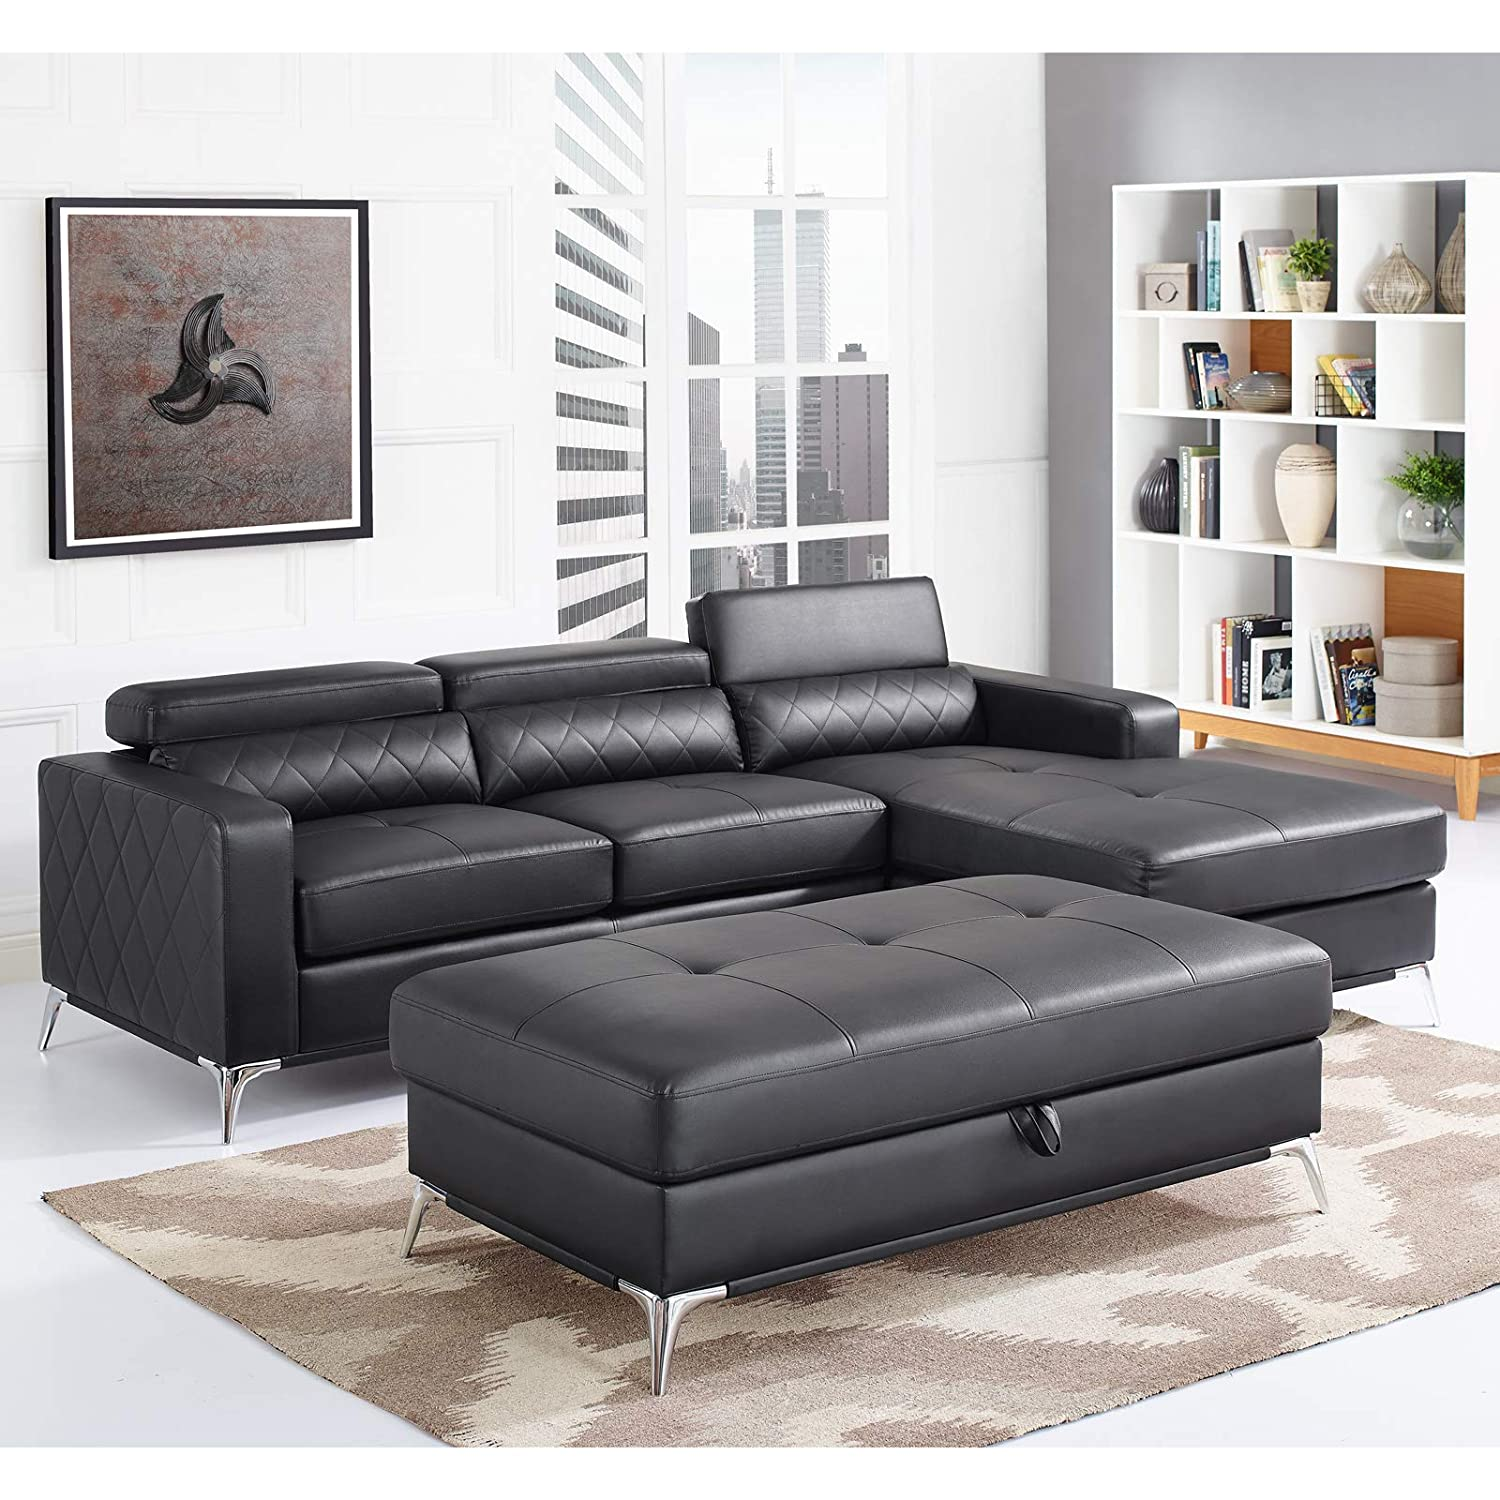 Really Feel Comfy With Black Living Room Furniture Amazon.com: Sectional Sofa with Large Storage Ottoman, Right Facing Chaise  3 Pieces Set Faux Leather Recliner (Black) 2019 Updated Model by Bliss  Brands: ...